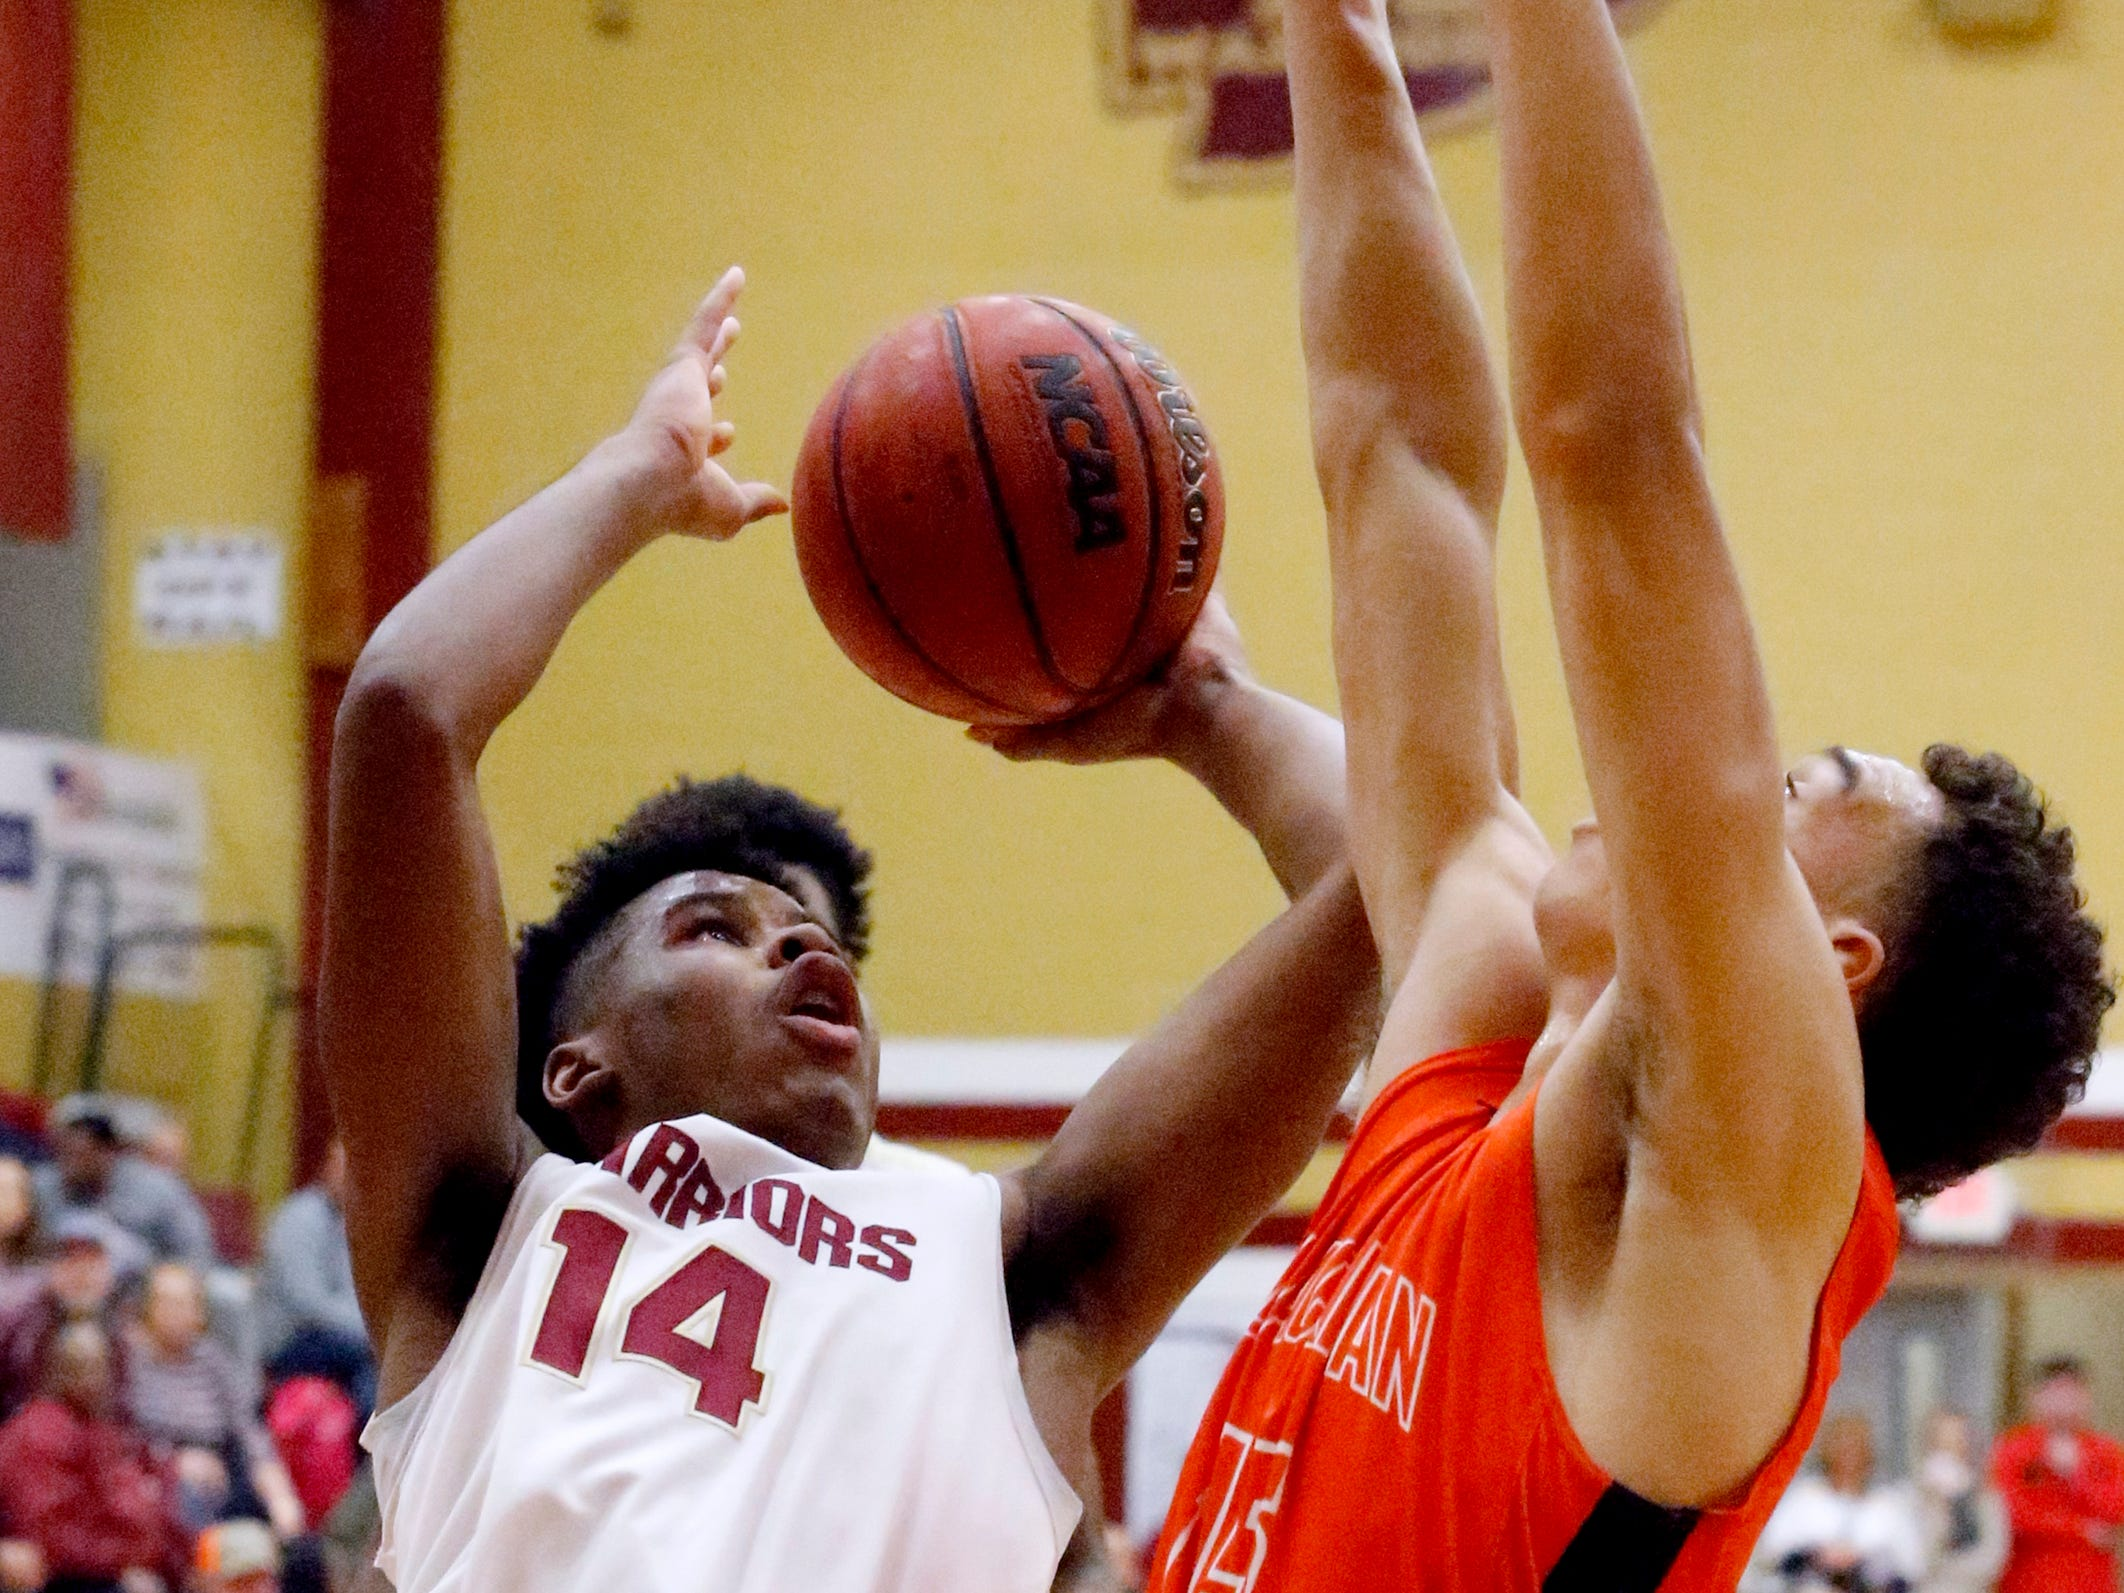 Riverdale's Deron Perry (14) goes up for a shot as Blackman's Jalen Page (15) guards him on Tuesday Jan. 8, 2019.